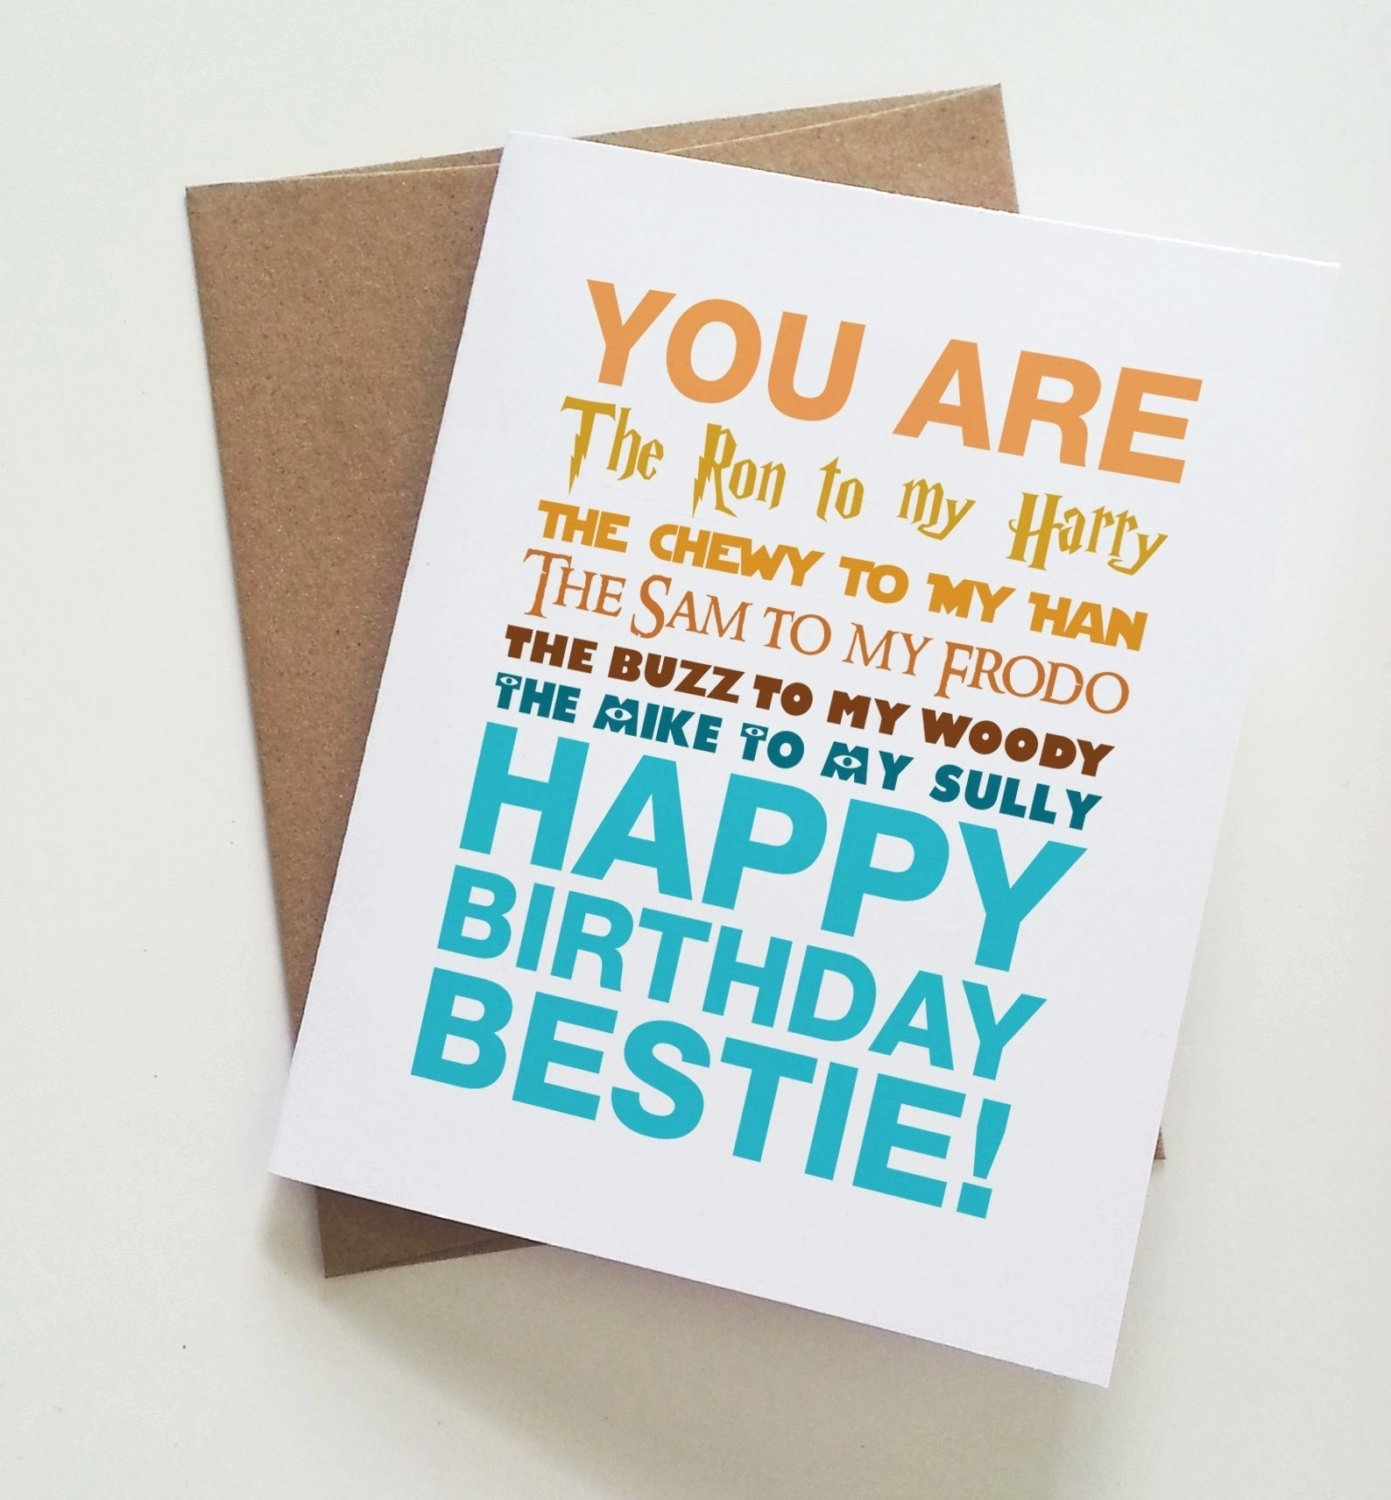 Ideas To Make A Birthday Card For A Best Friend Birthday Card Making Ideas For Best Friend Homemade Bday Cards For